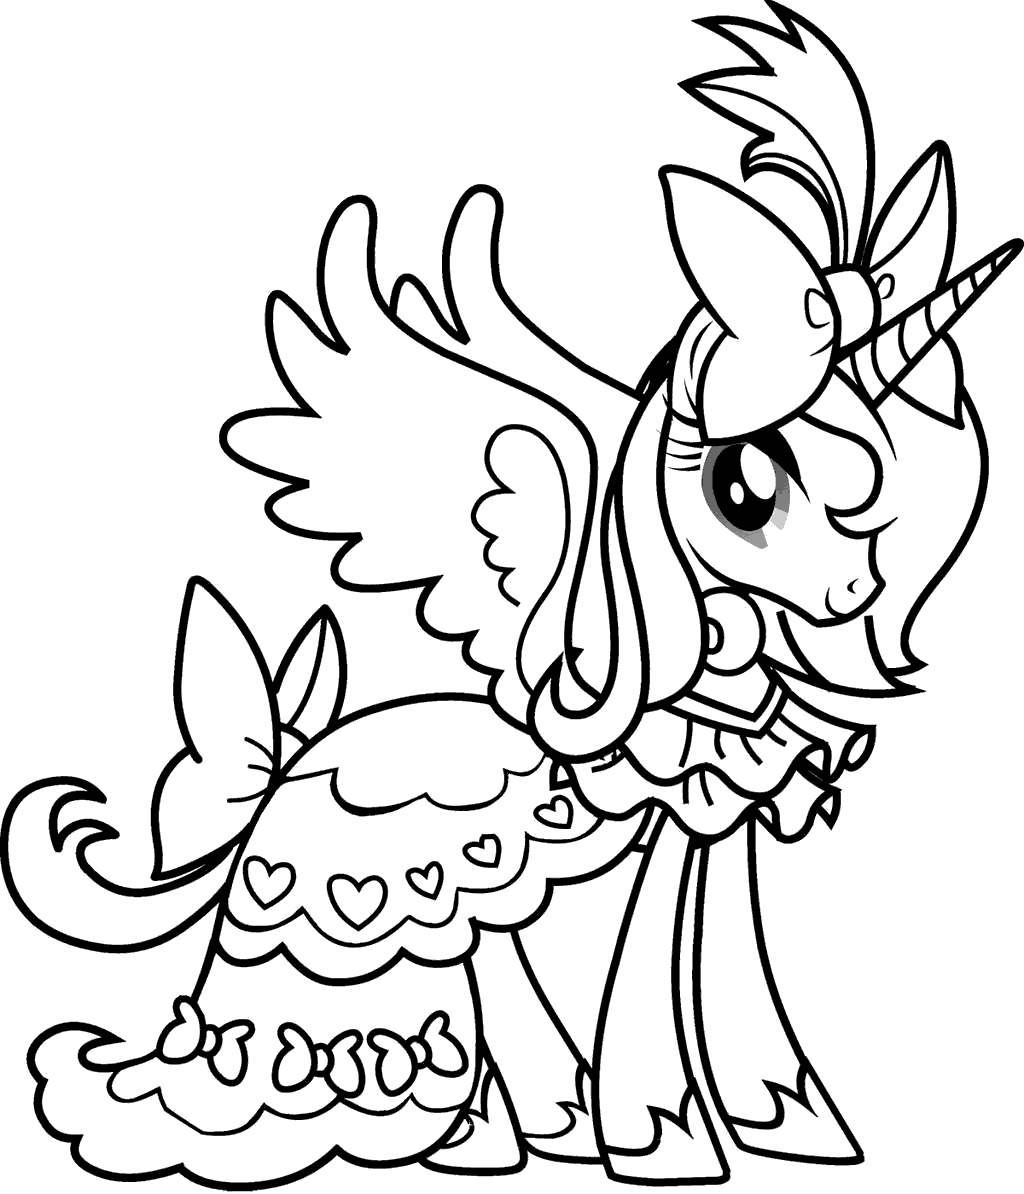 Free Unicorn Coloring Pages  Outline printable